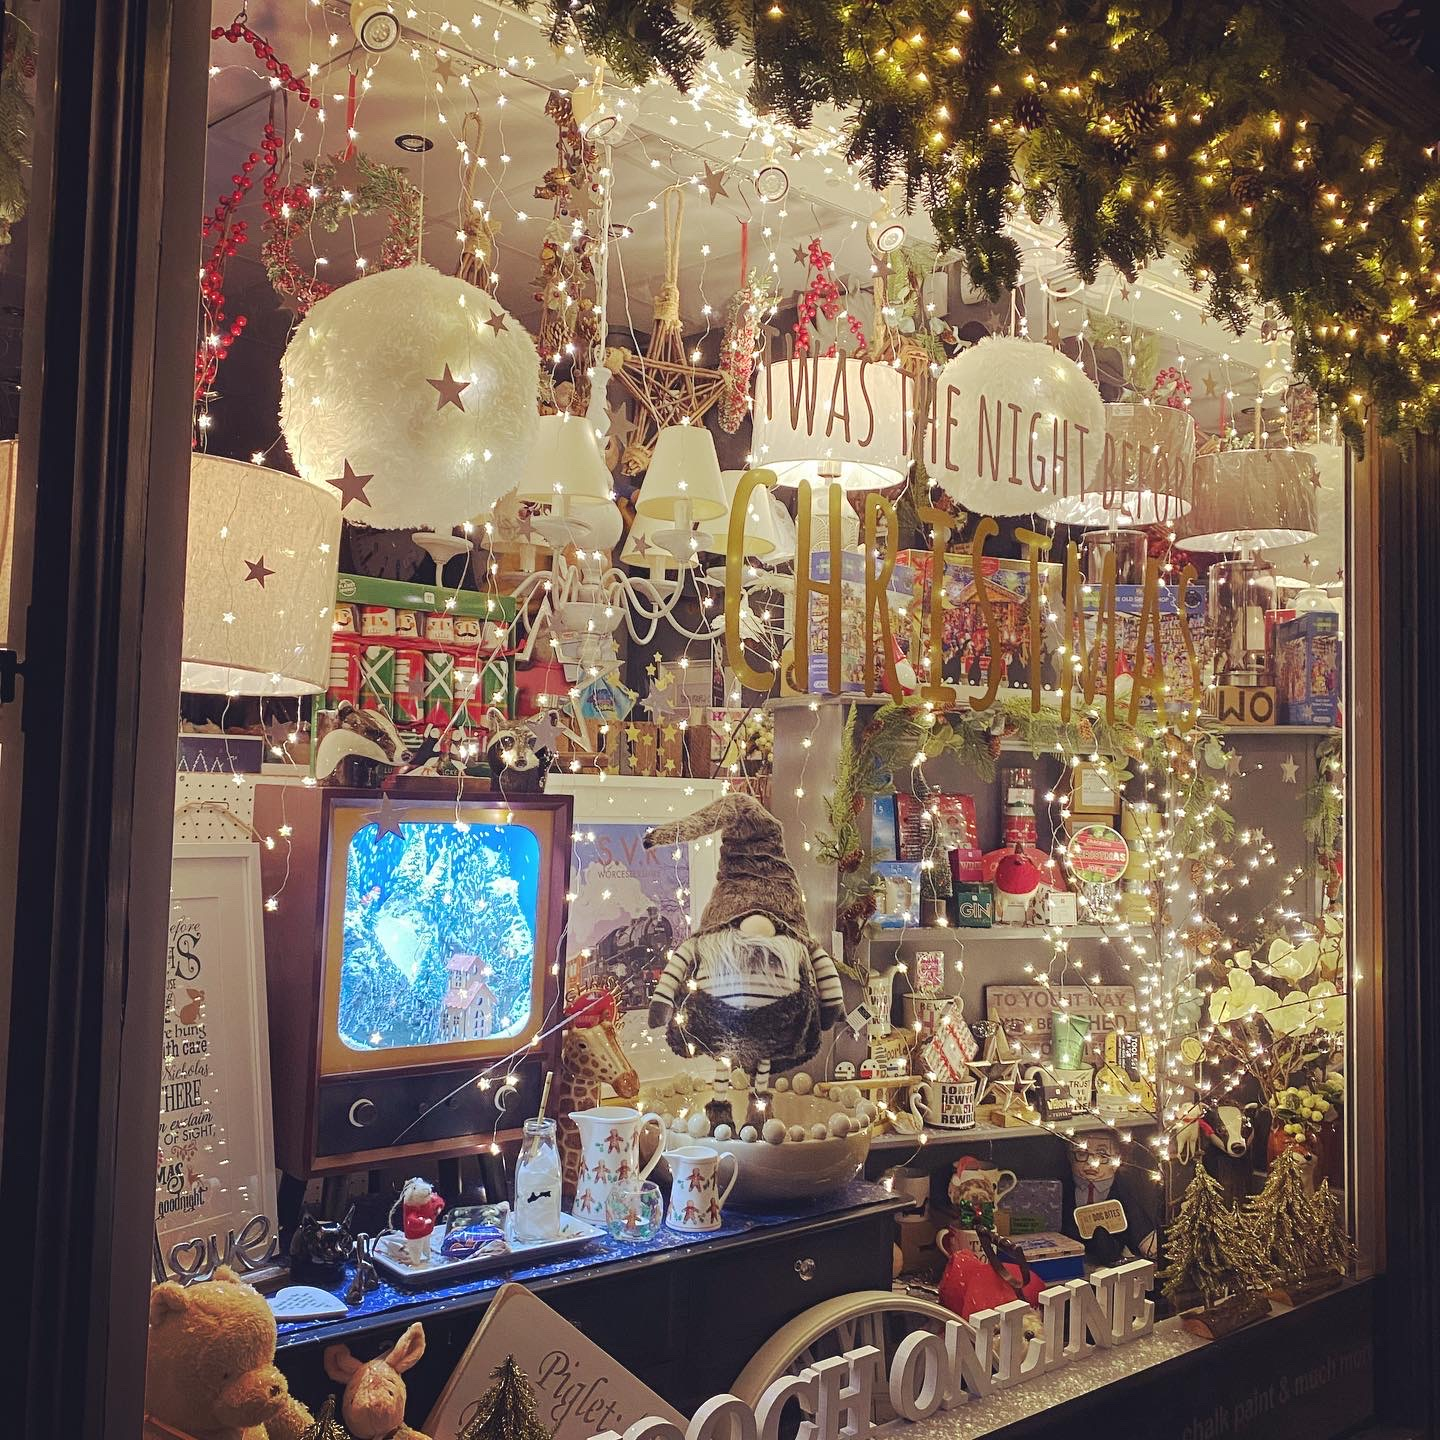 Above: An arresting window display from Mooch.